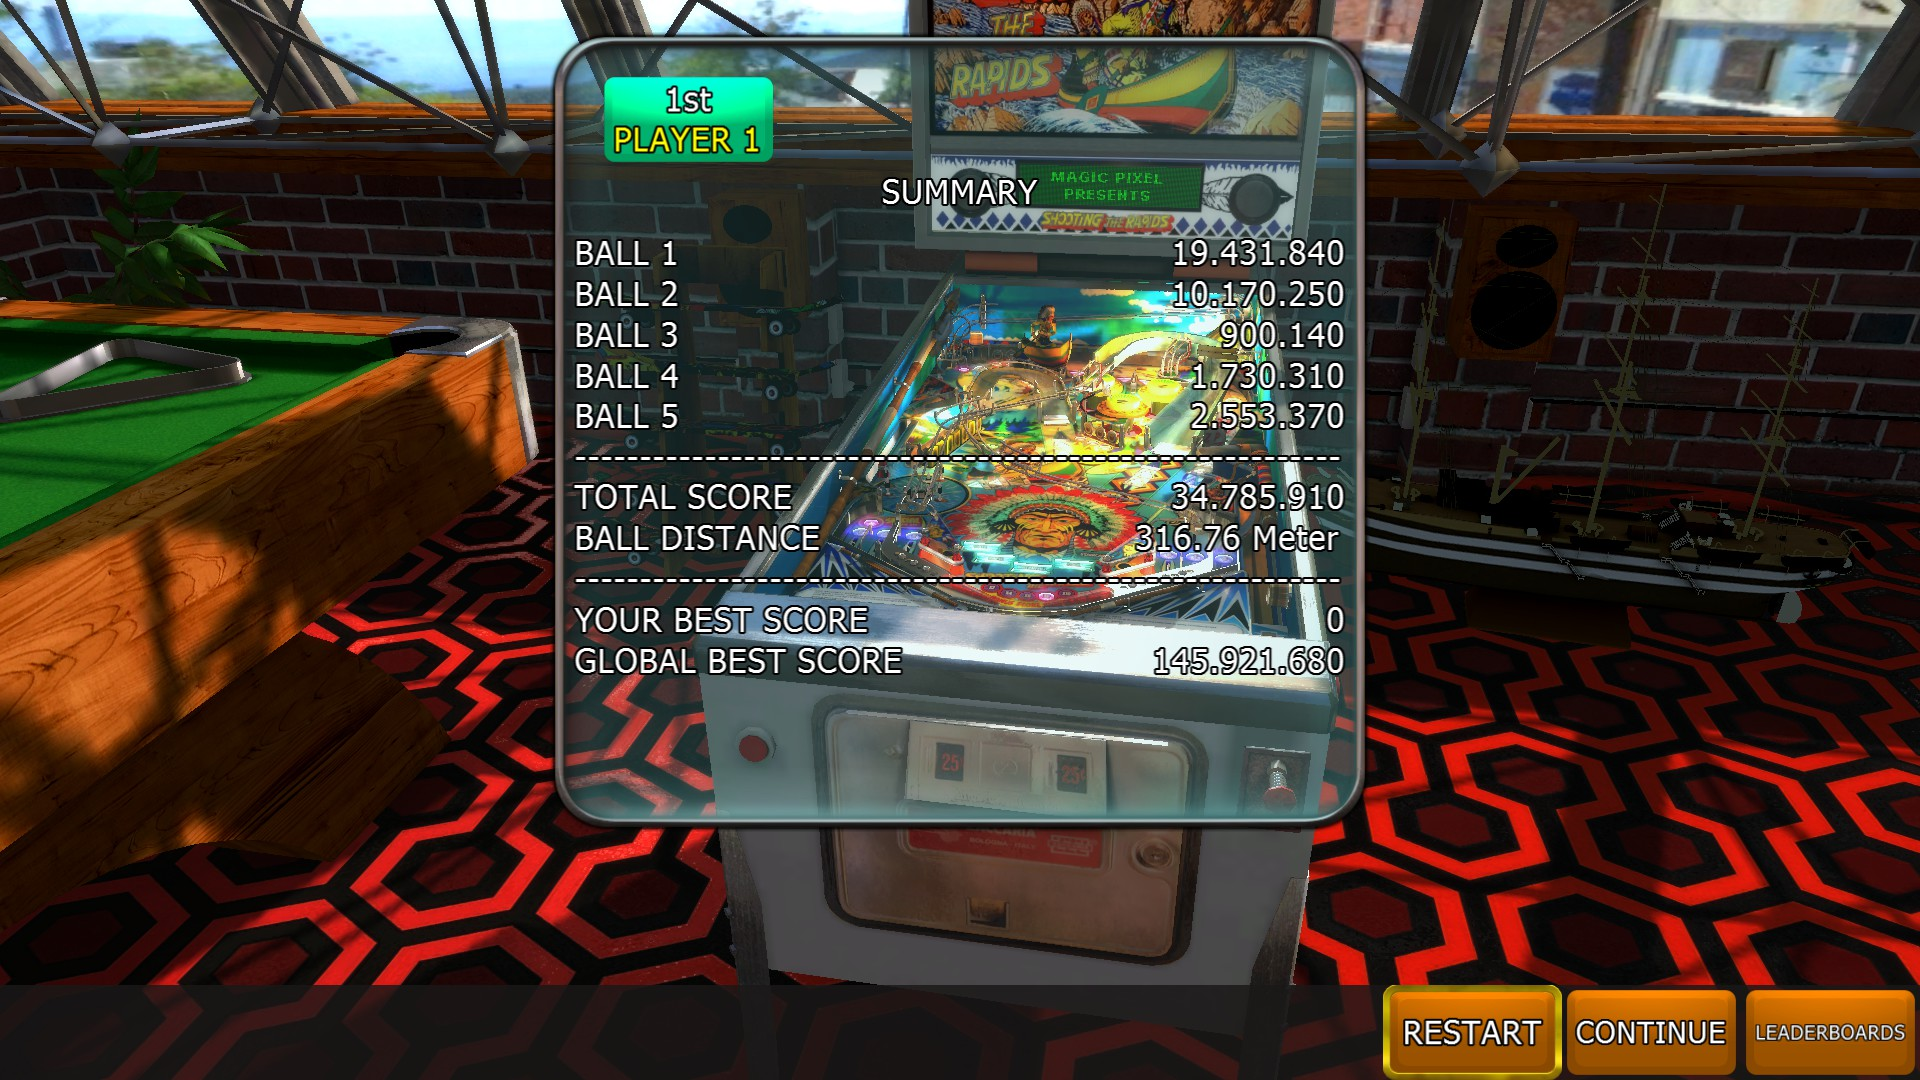 Mantalow: Zaccaria Pinball: Shooting The Rapids 2016 [5 balls] (PC) 34,785,910 points on 2018-05-10 06:20:33